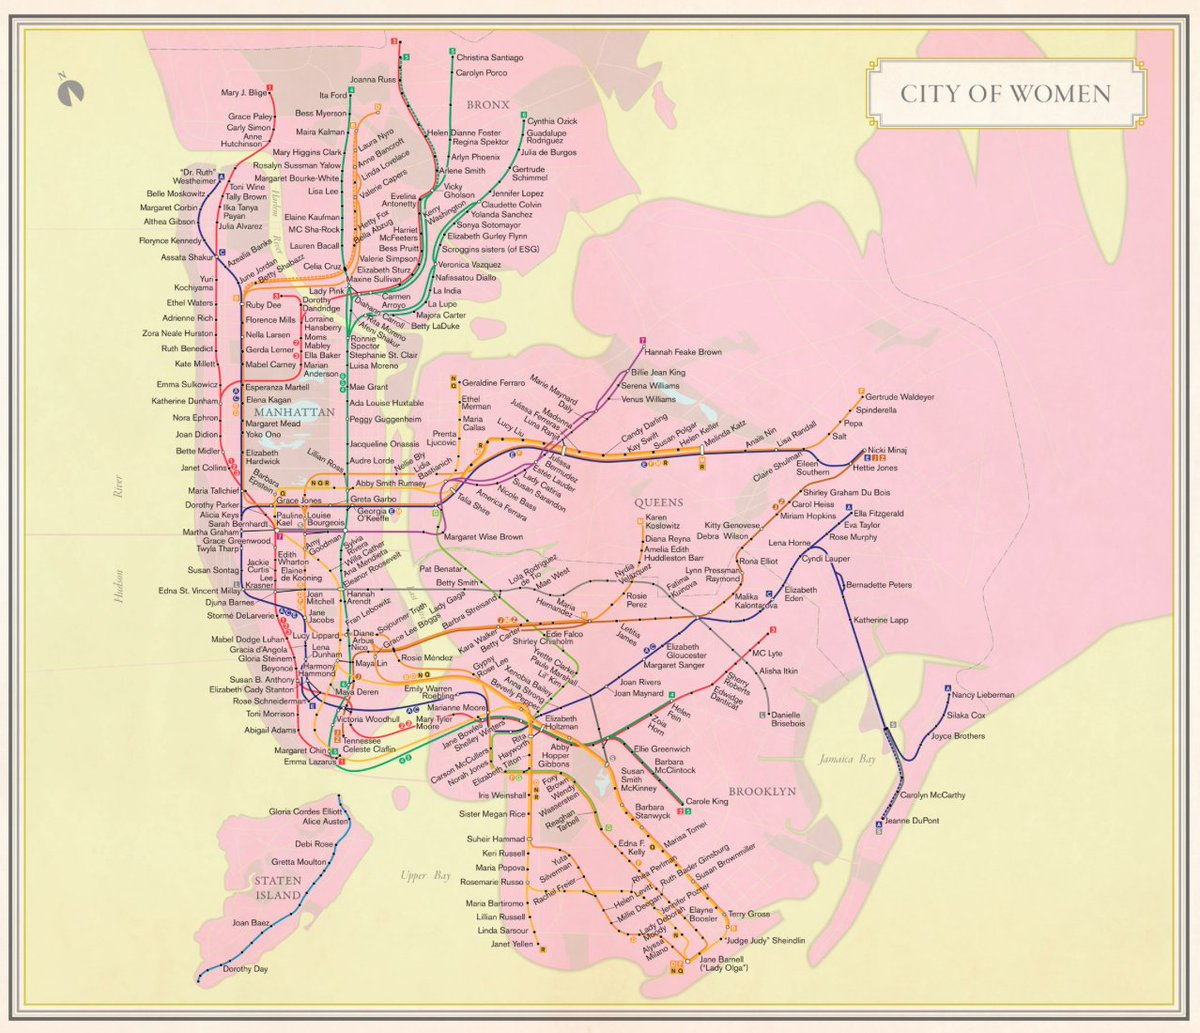 Check out the NYC subway map that pays homage to the city's most accomplished women